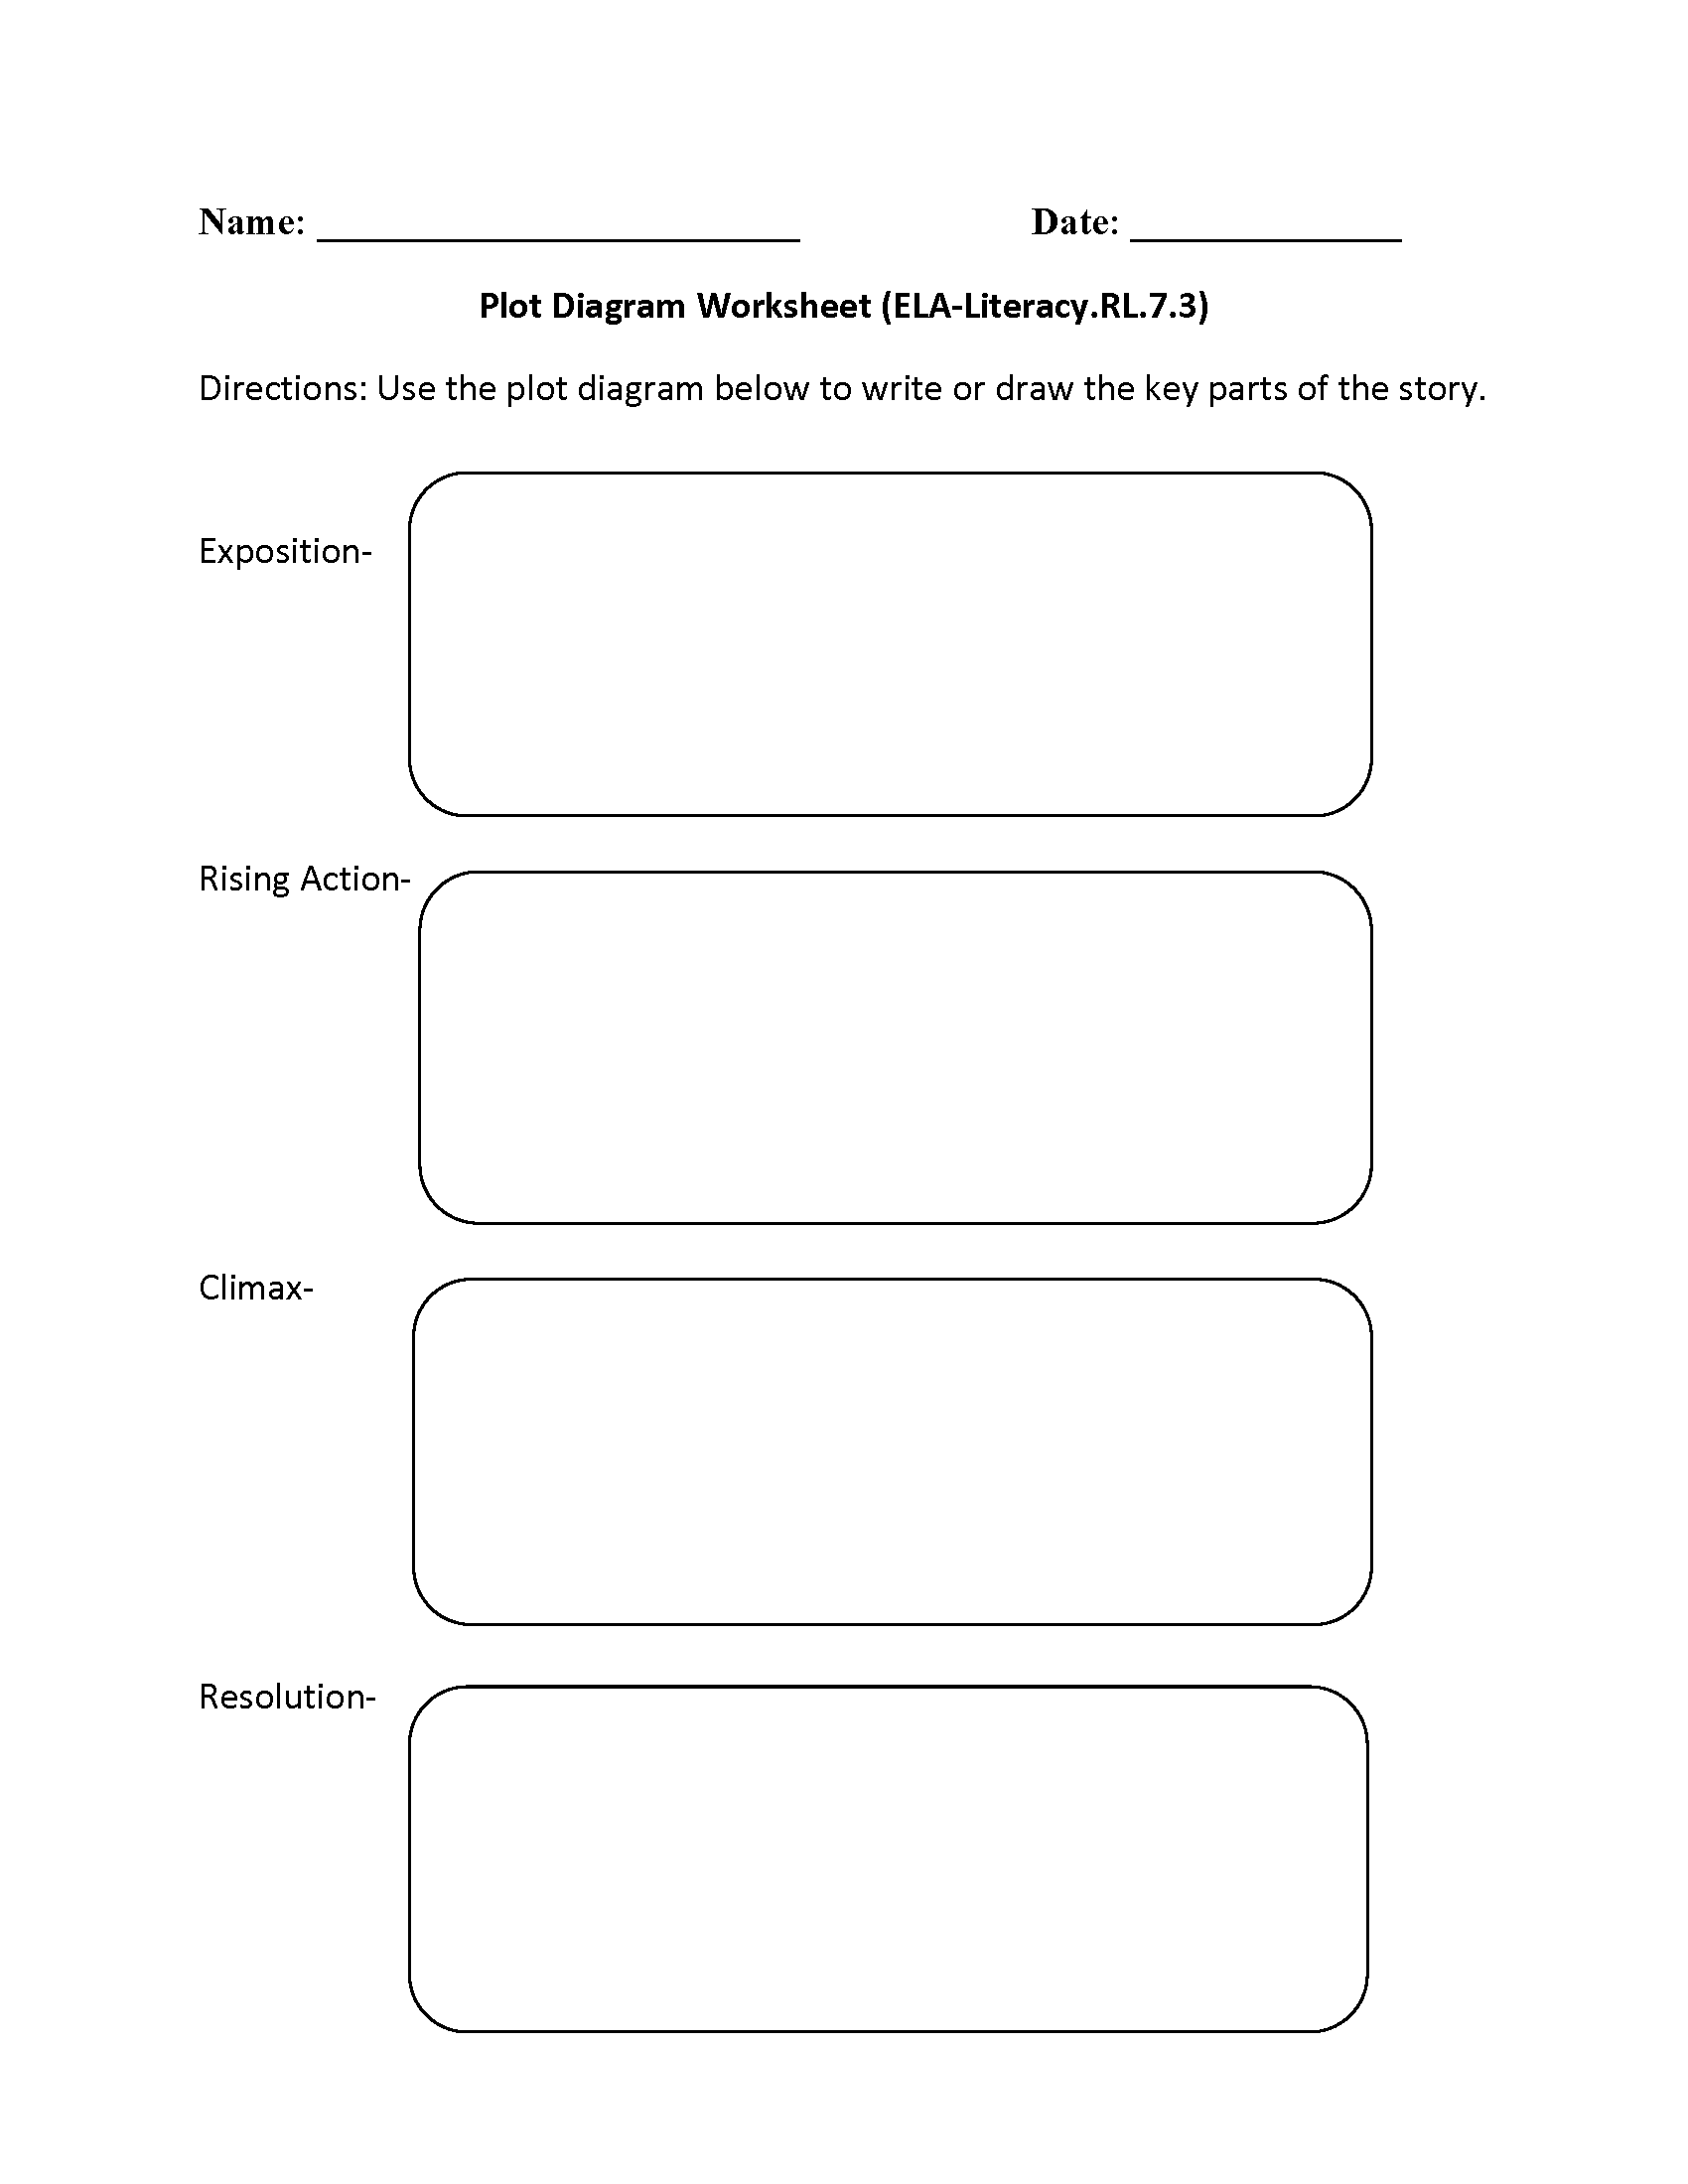 worksheet Worksheets For 7th Grade 7th grade common core reading literature worksheets worksheet